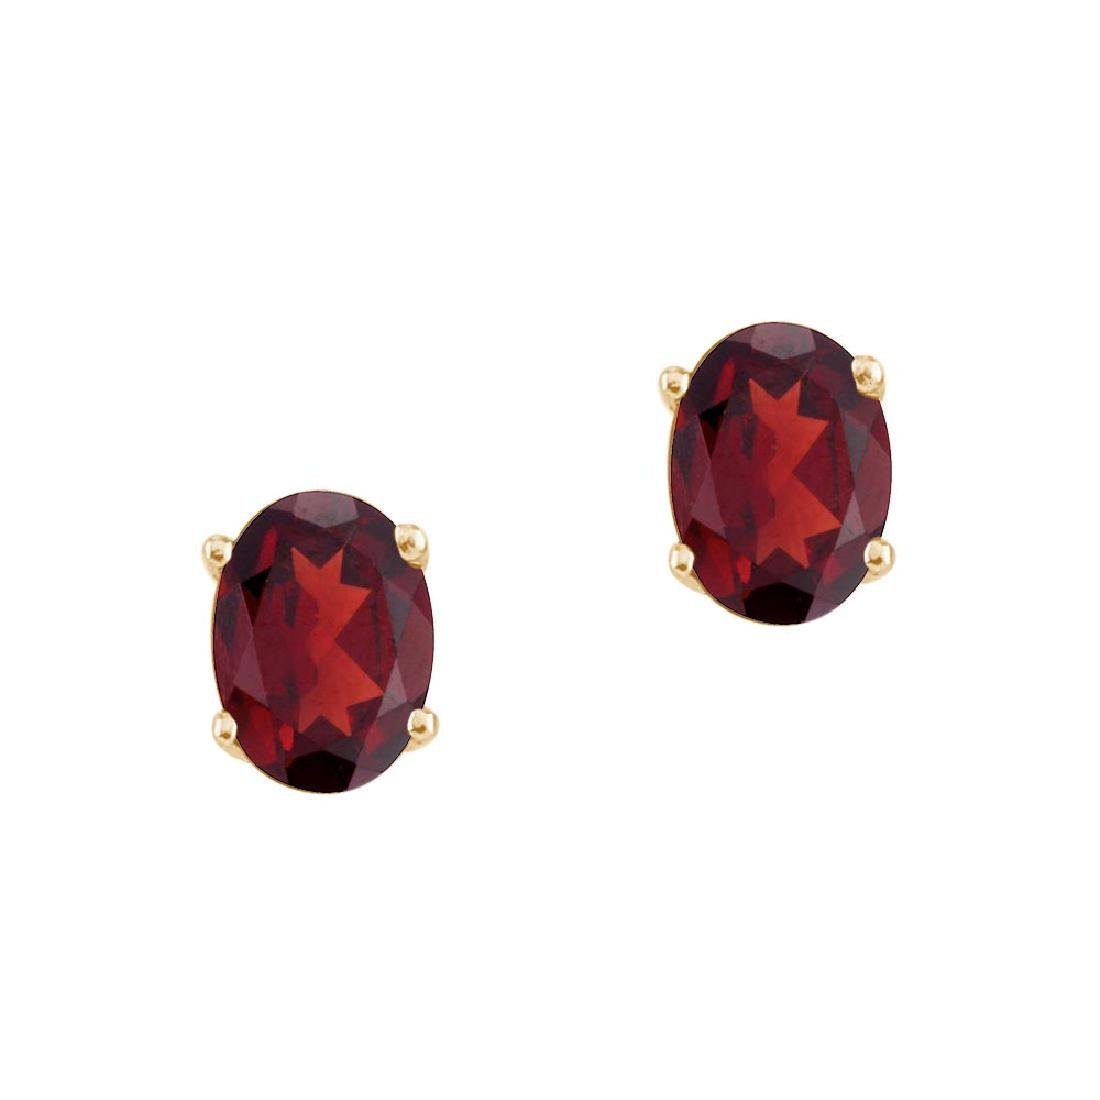 Certified 14k Yellow Gold Oval Garnet Stud Earrings 1.5